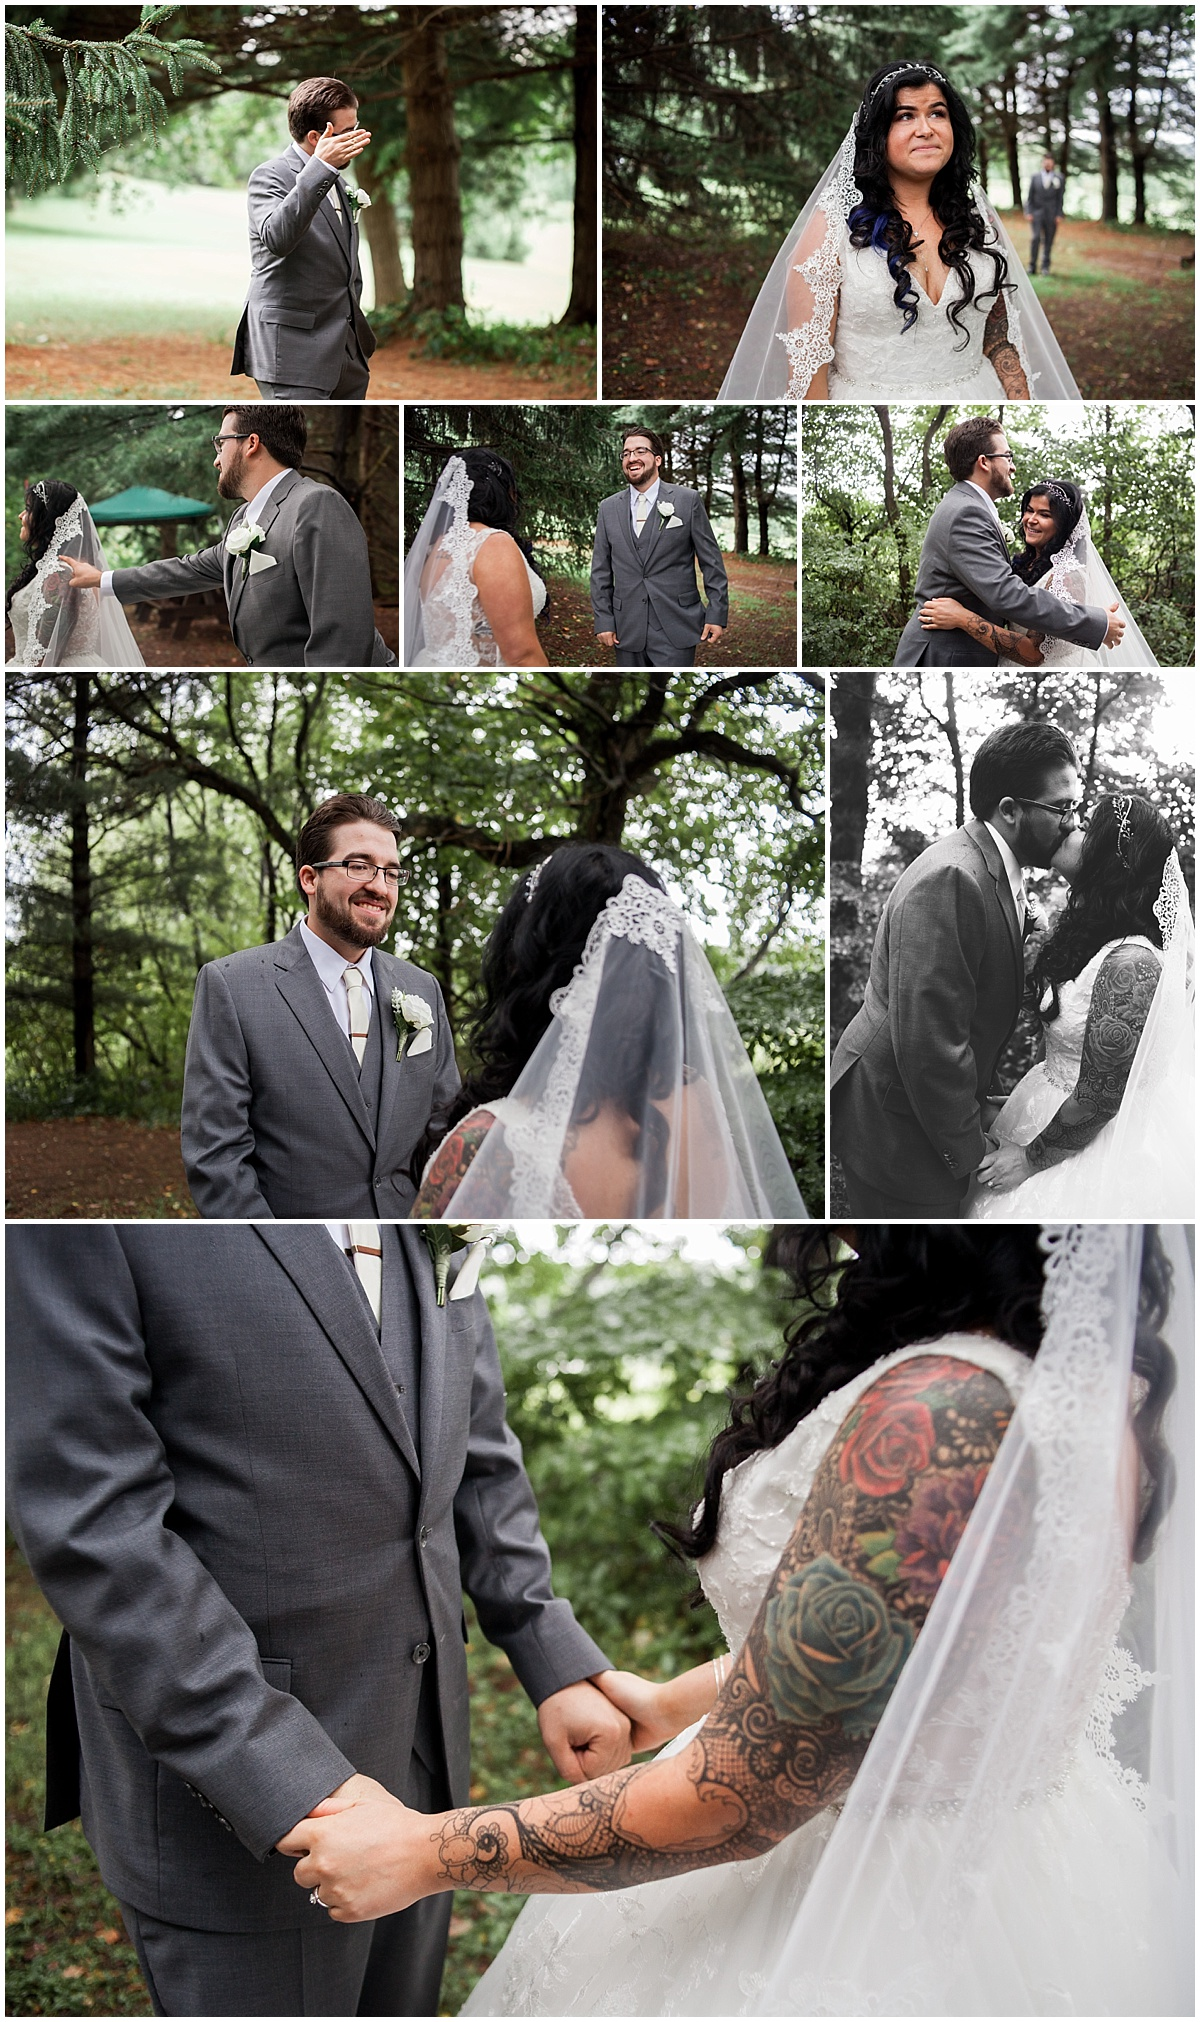 first look wedding photographer pittsburgh pa